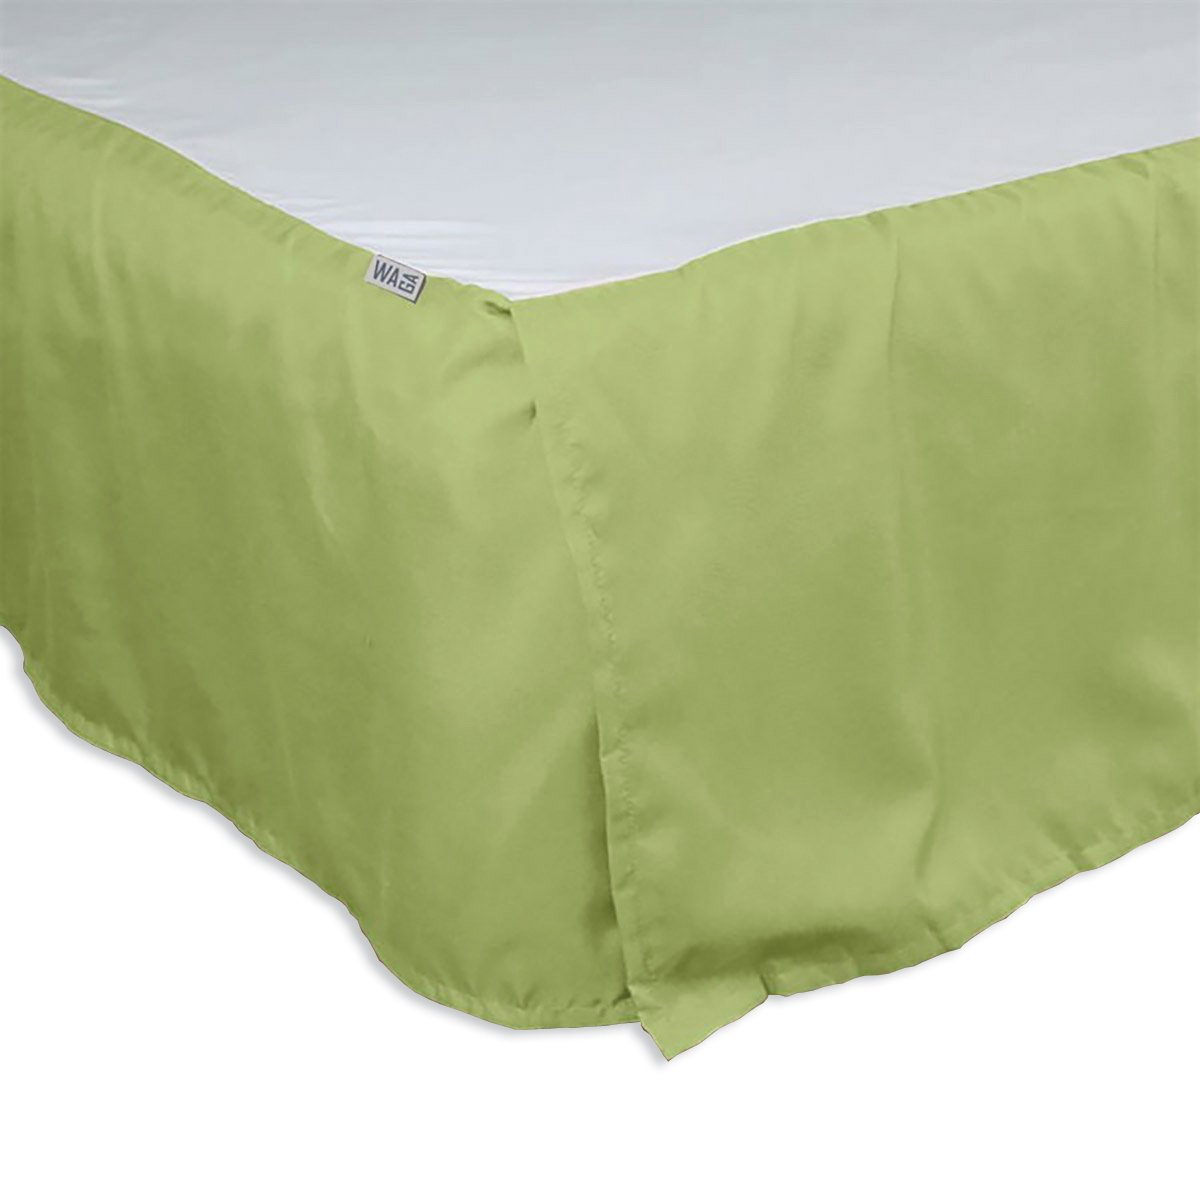 Waga Bed Skirt - Lime Green, King (78'' x 80'') by Waga (Image #1)